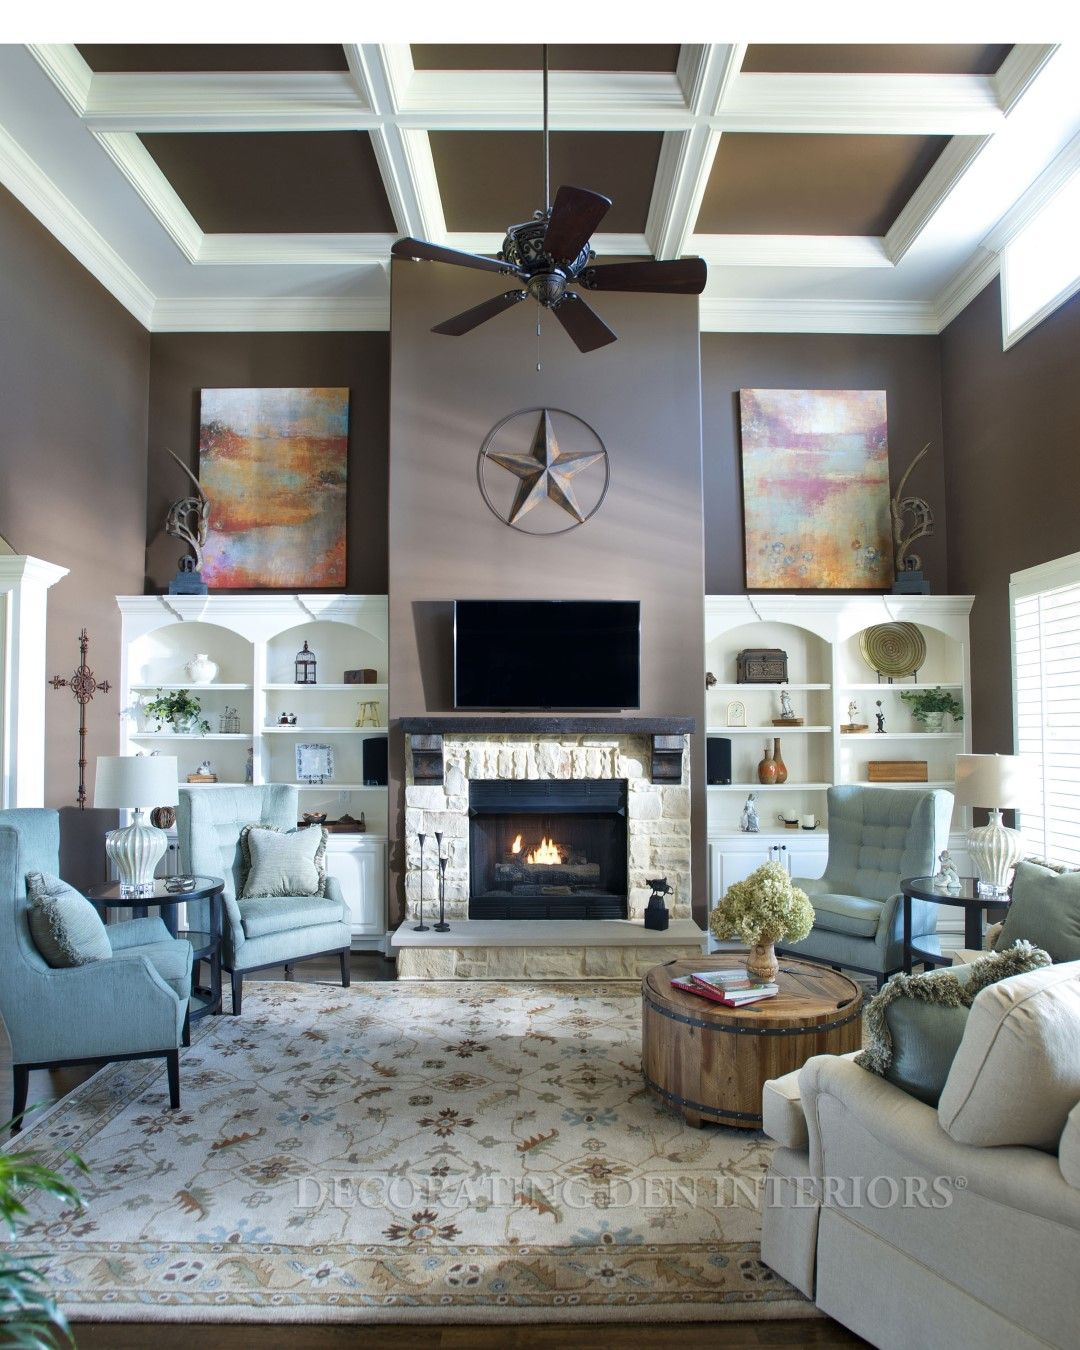 Living room designs by Decorating Den Interiors.  Want this look?  Call Decorating Den Interiors by Julie Ann to set up your FREE consultation 651-504-2080. #Design #livingroom #interiors #home #decorating #decor